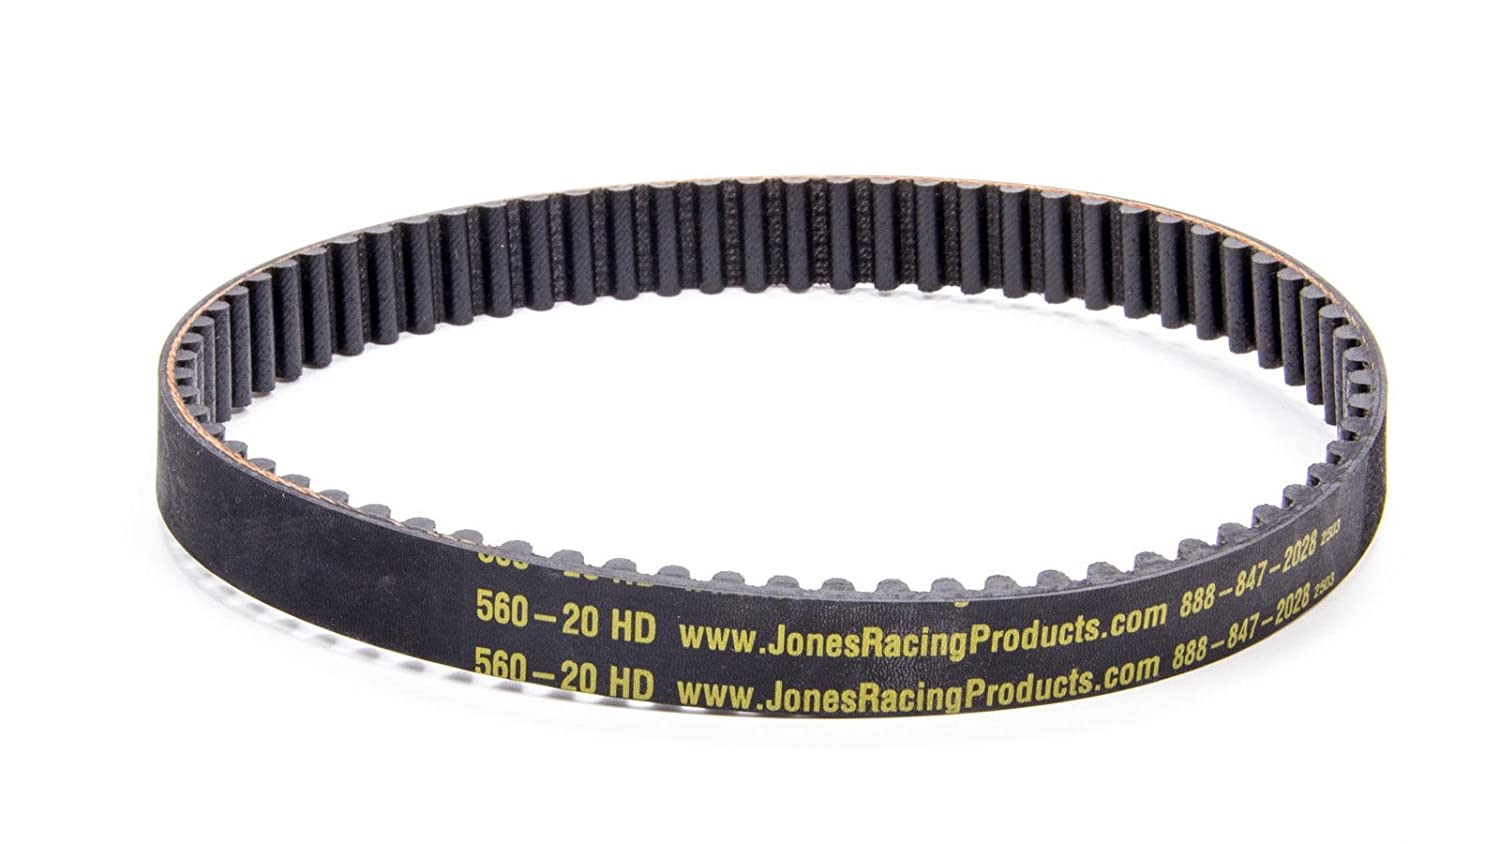 Jones Racing Products (640-20HD) 25.197' Long Drive Belt 640-20 HD